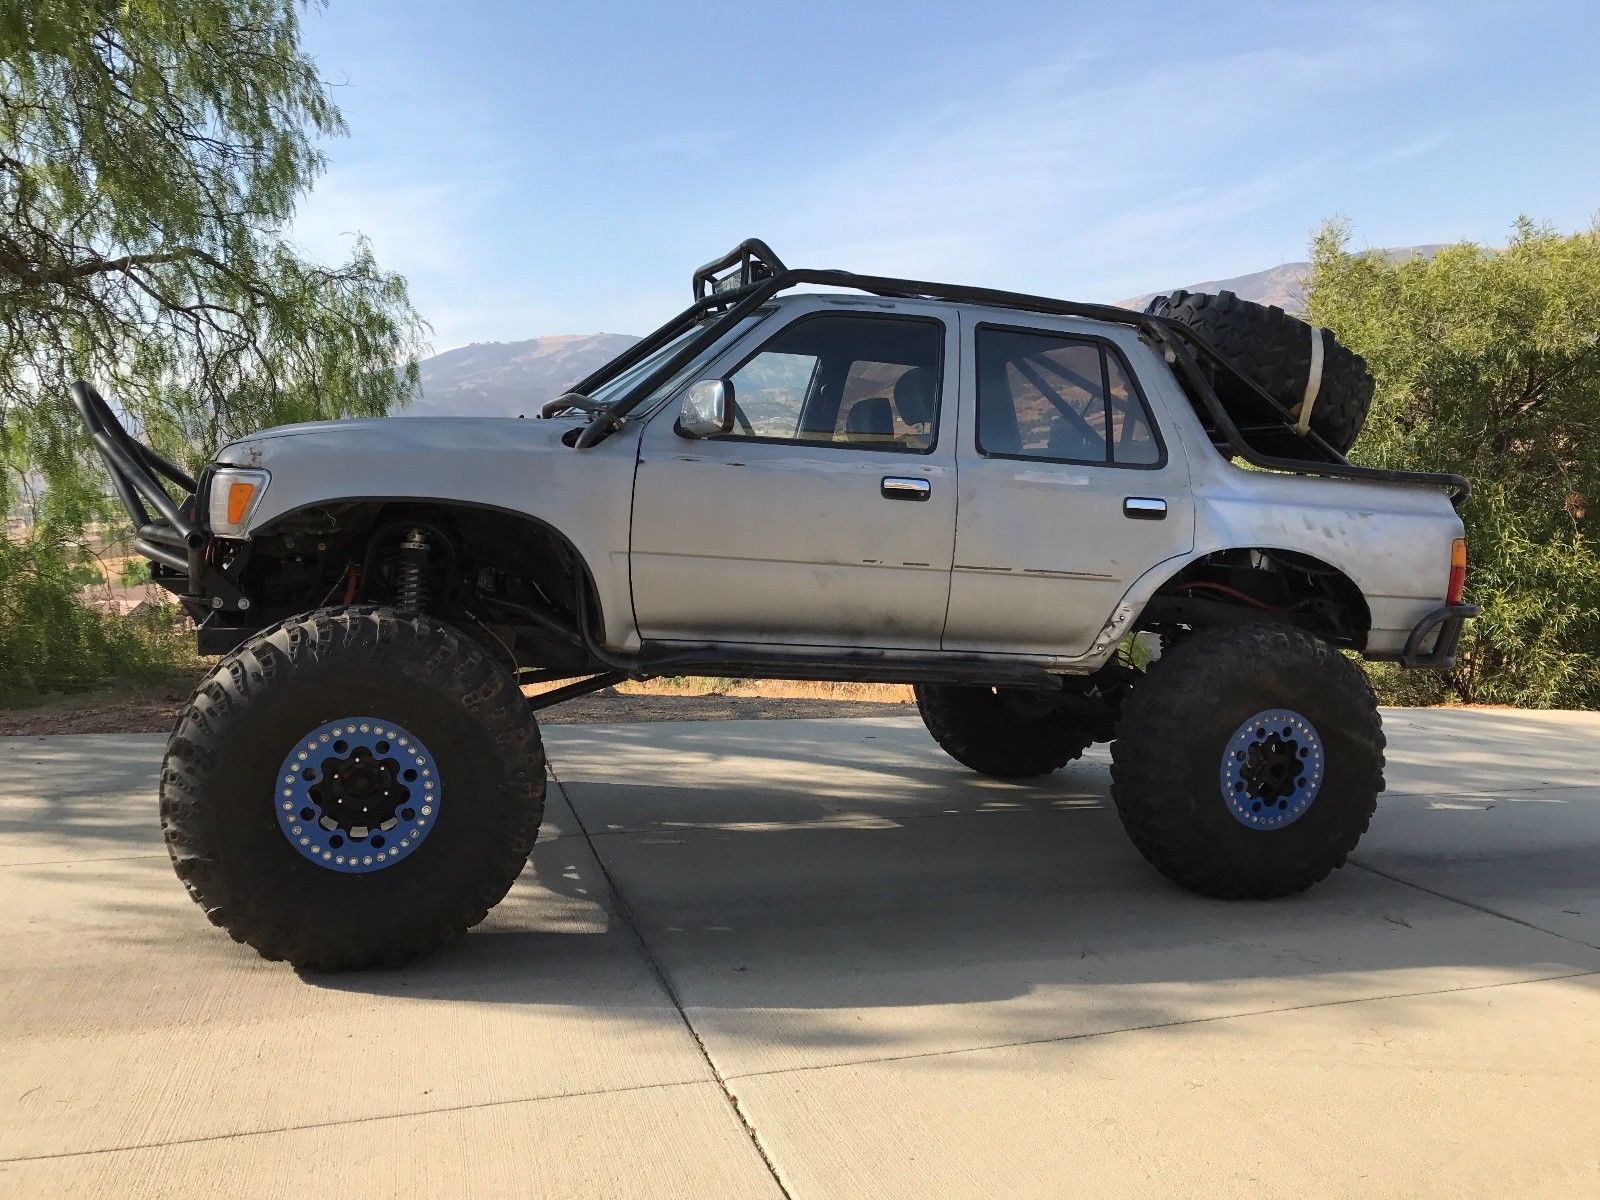 Chevy Auxiliary Speaker in addition Toyota Runner With A Uz V besides Fop Tangent Vita Lt D Dual Core Ghz Gb Gb Win Xbmc All In One Aio Htpc moreover Img Medium as well Toyota Runner. on 1991 toyota 4runner manual transmission